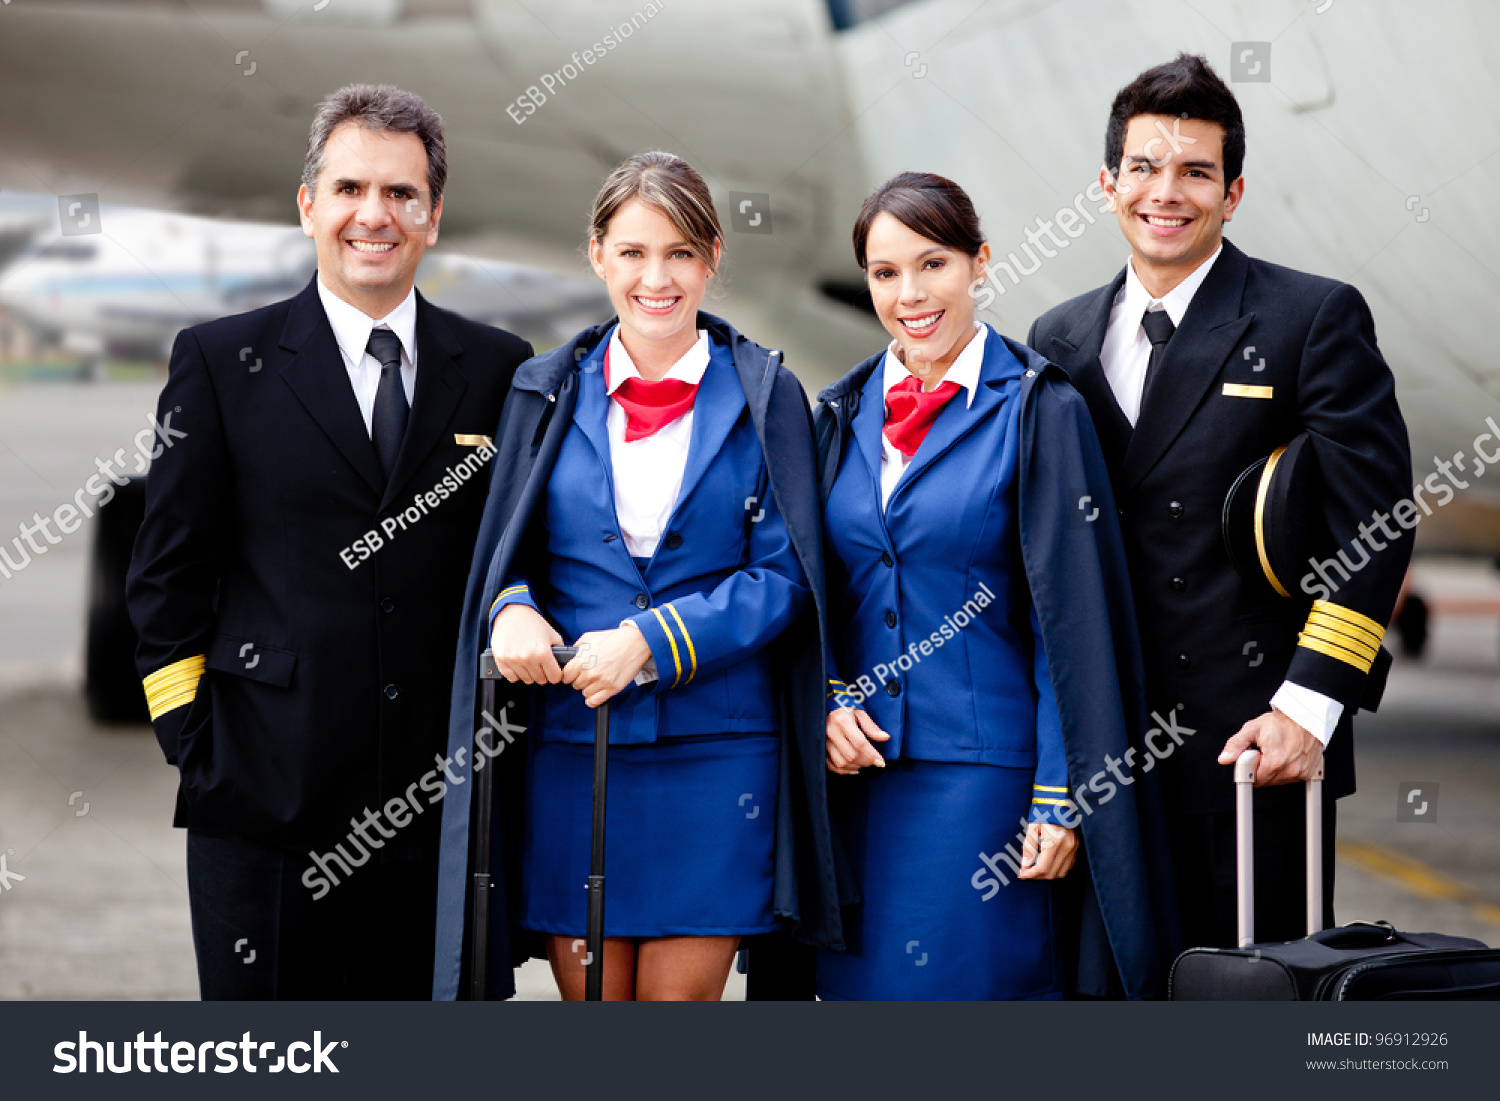 American airlines flight attendant uniforms photo Basic Aztec facts: AZTEC GODS - Welcome to Mexicolore